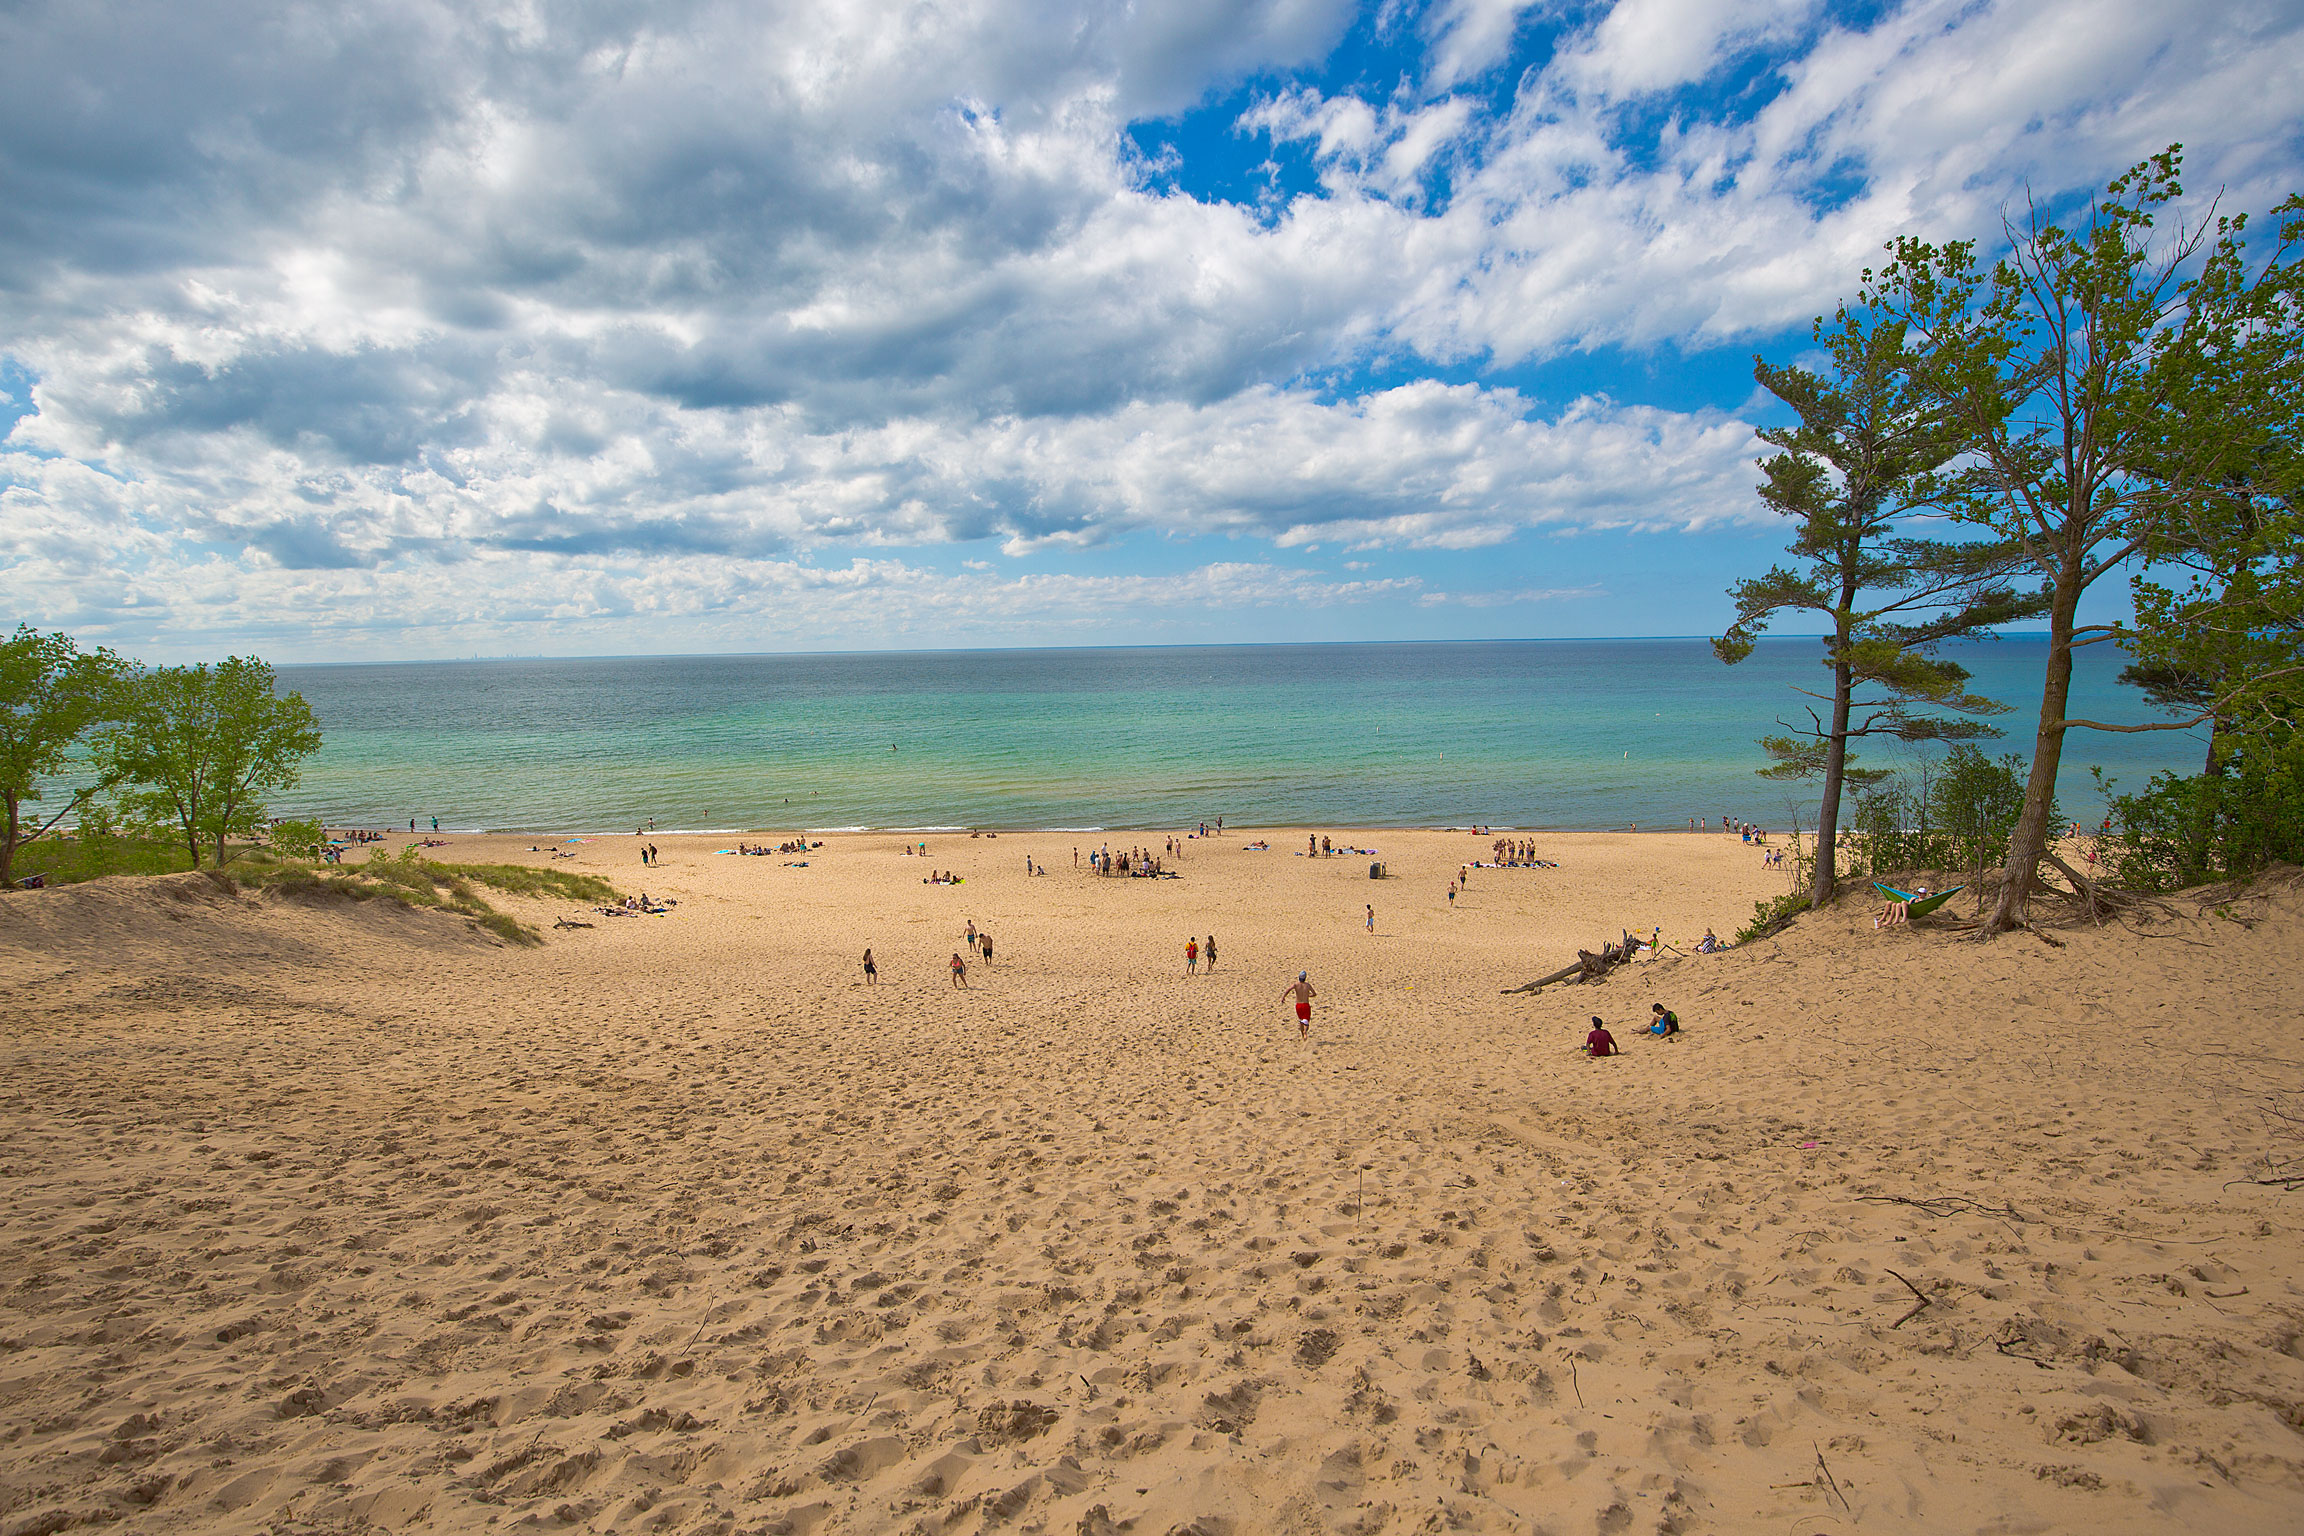 A beautiful day on the beach in Indiana Dunes State Park